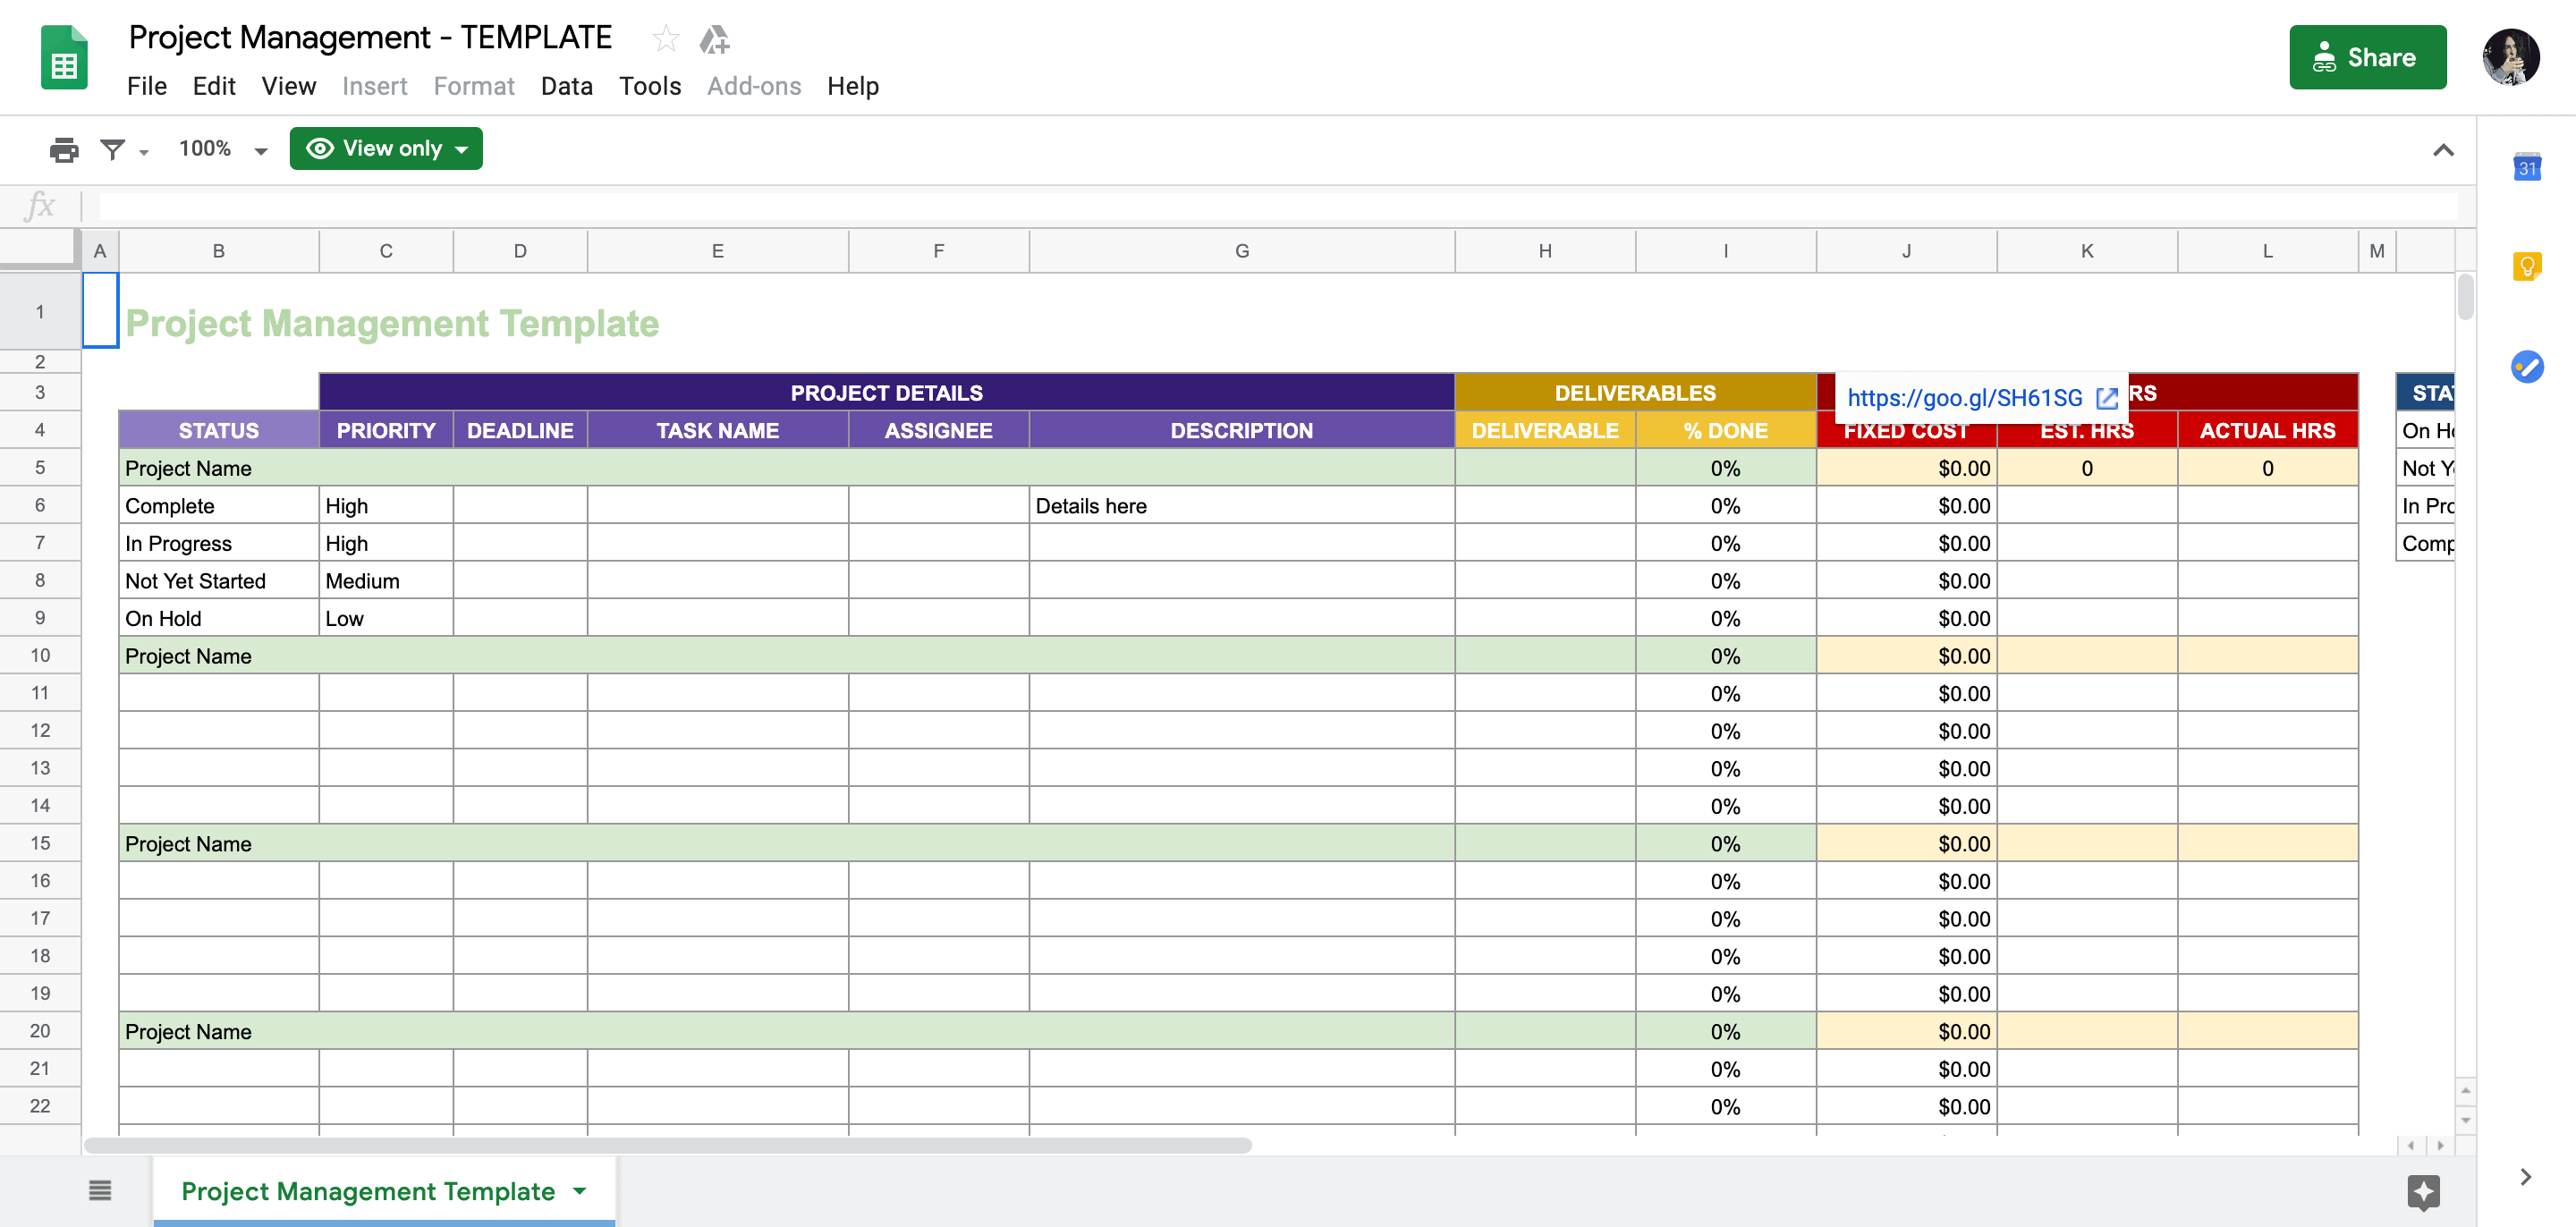 Project Management Spreadsheet Template from sheetsformarketers.com